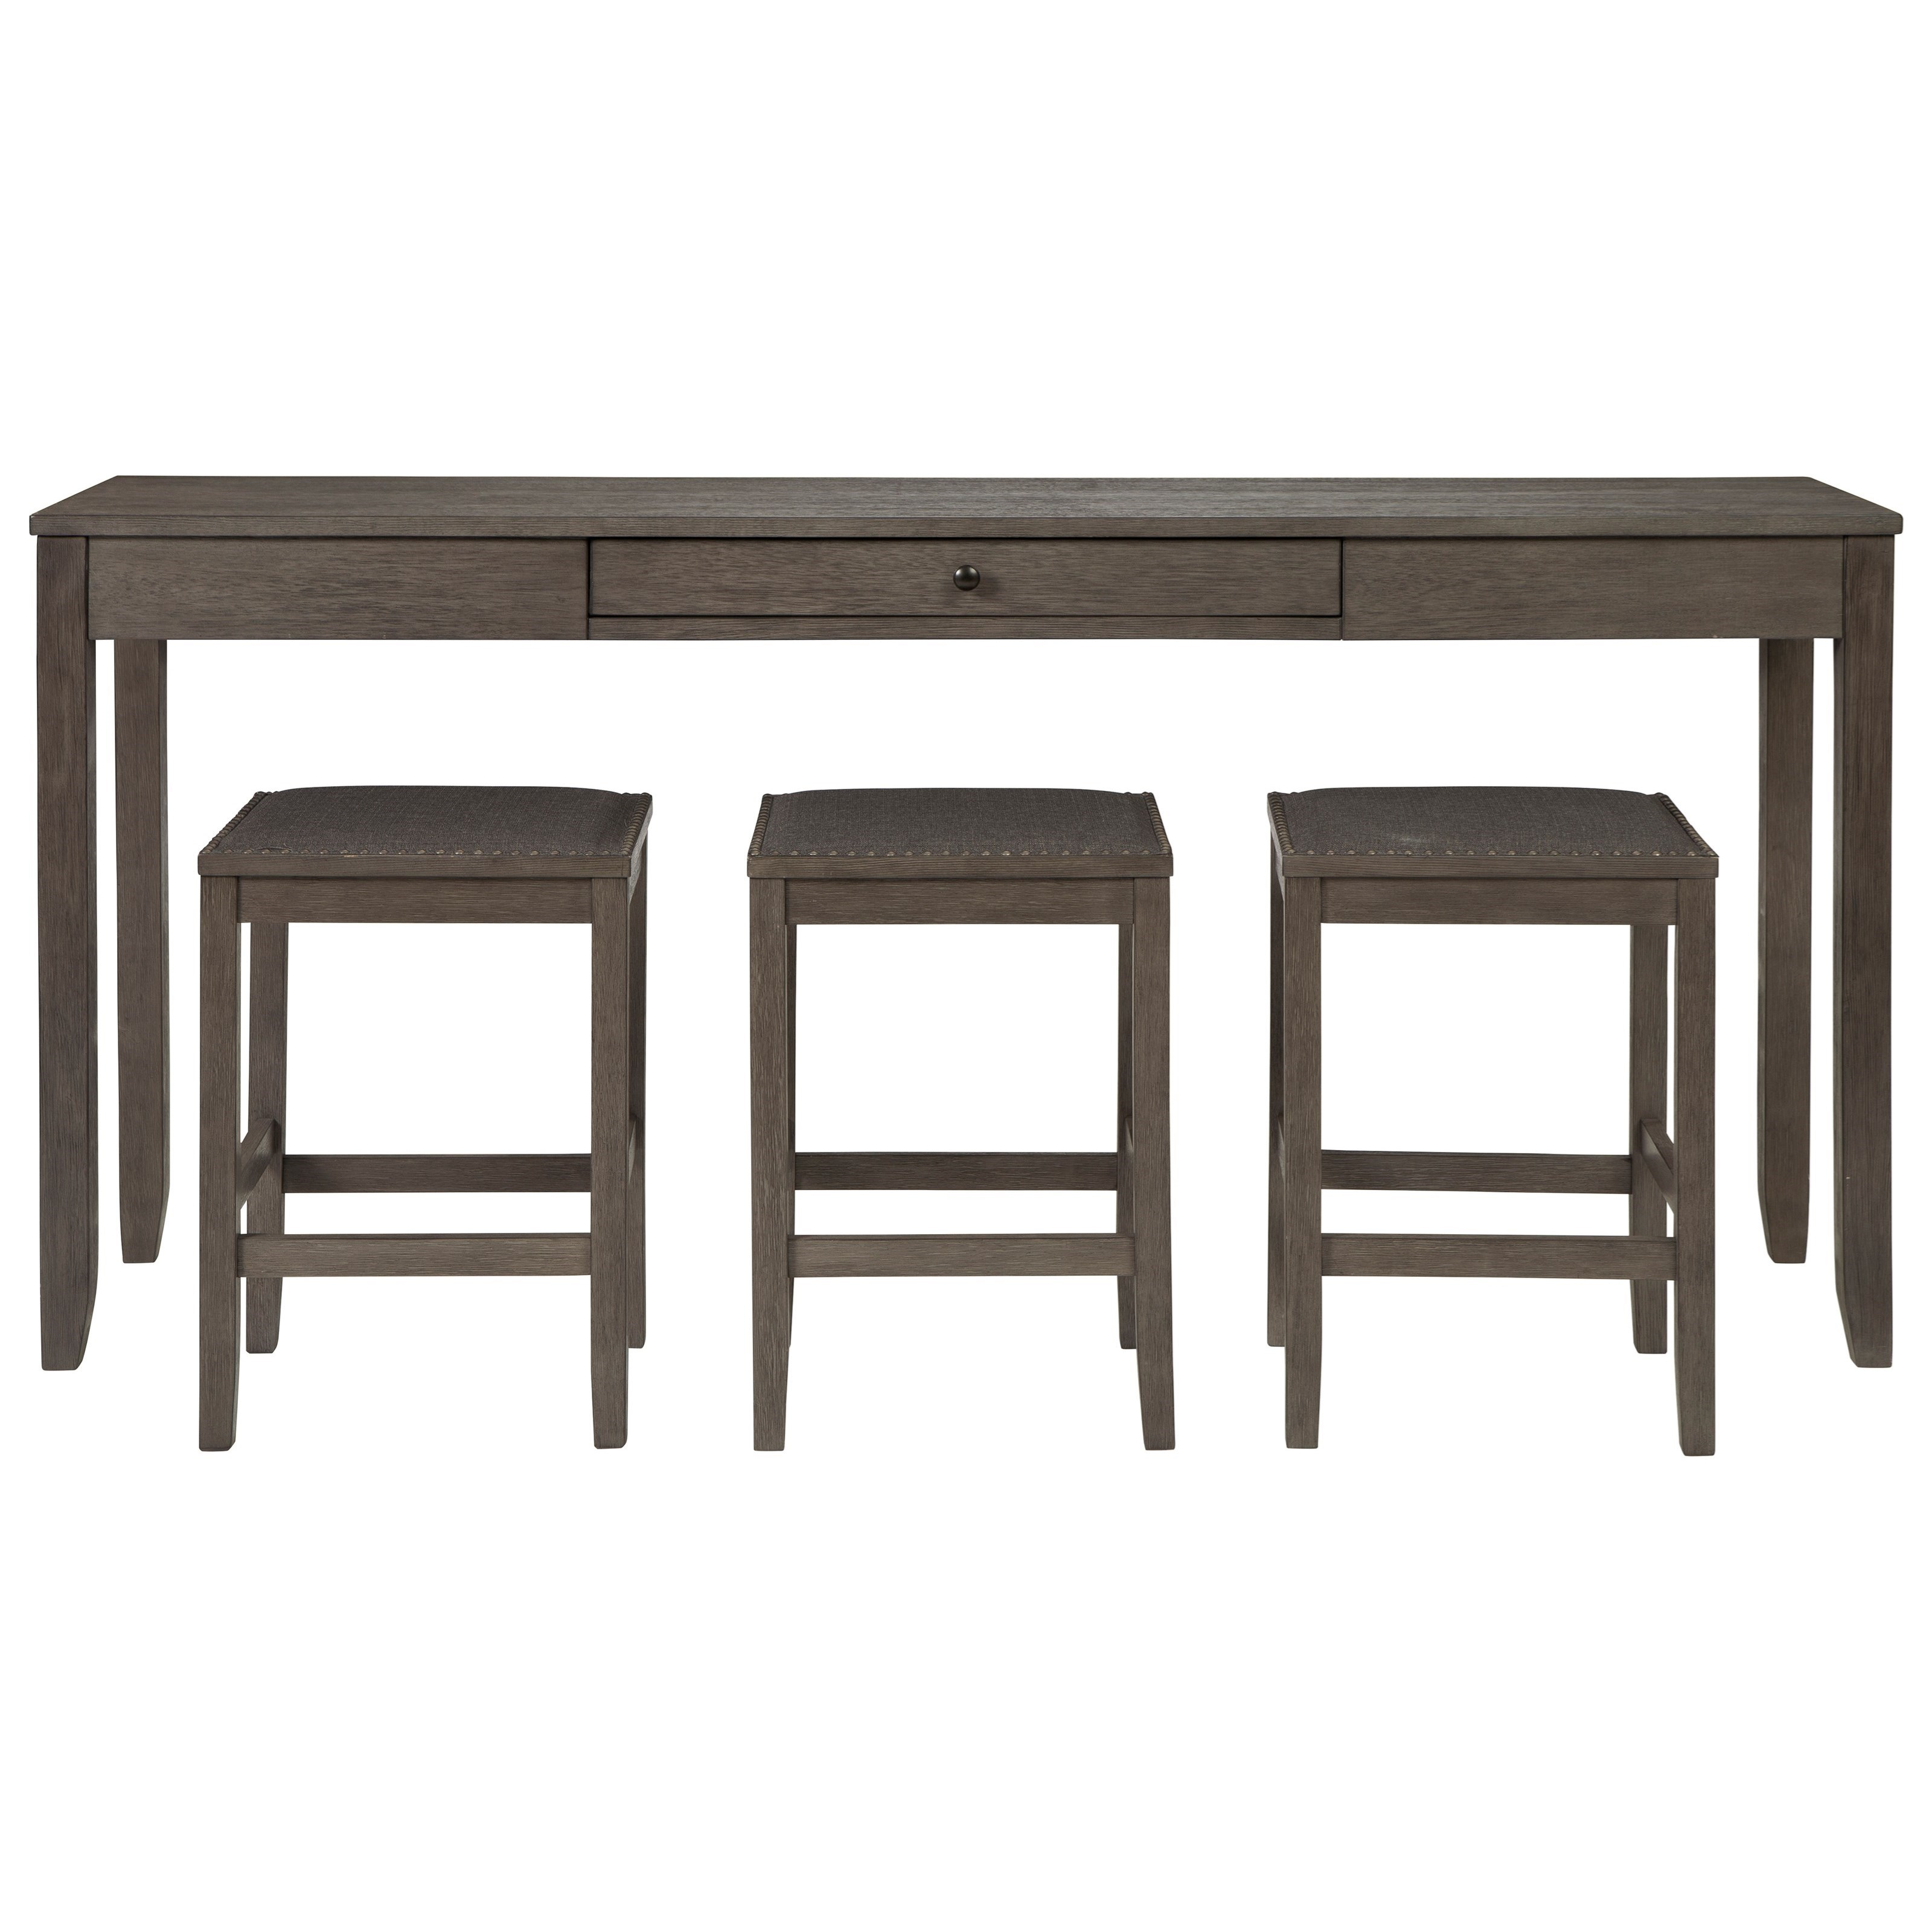 Caitbrook 4-Piece Rectangular Counter Table Set by Signature Design by Ashley at Northeast Factory Direct